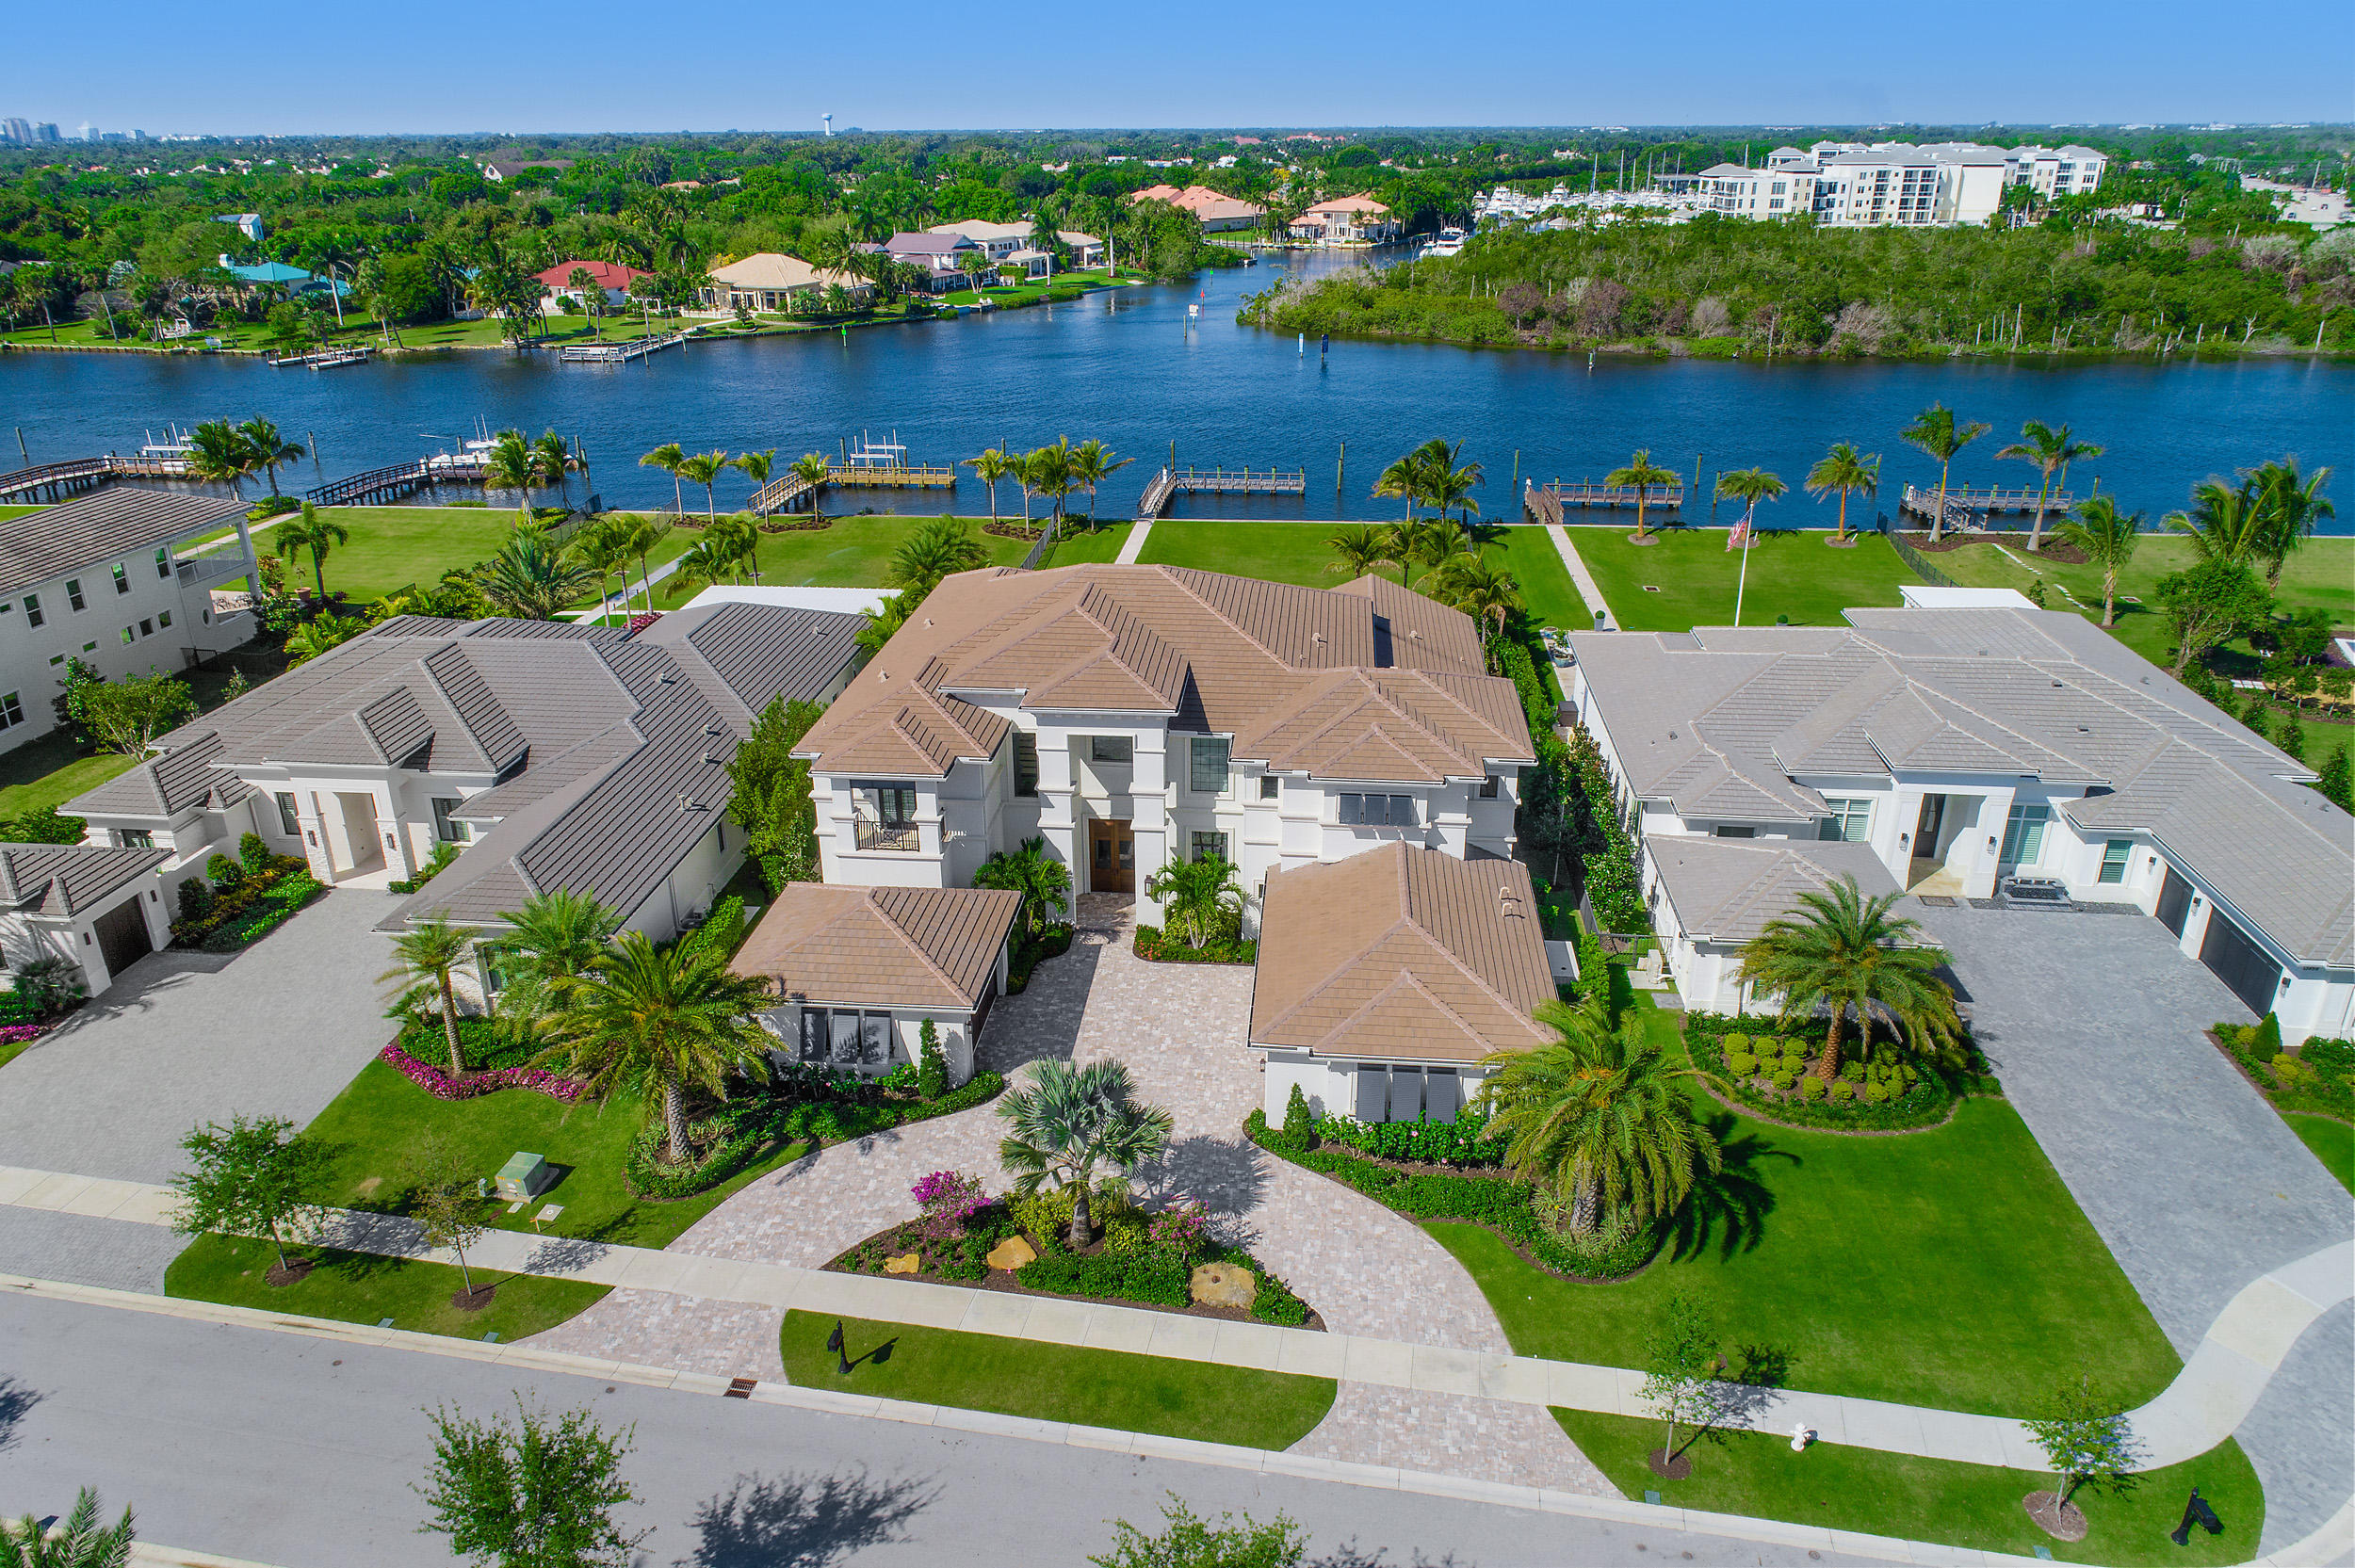 New Home for sale at 13951 Chester Bay Lane in North Palm Beach